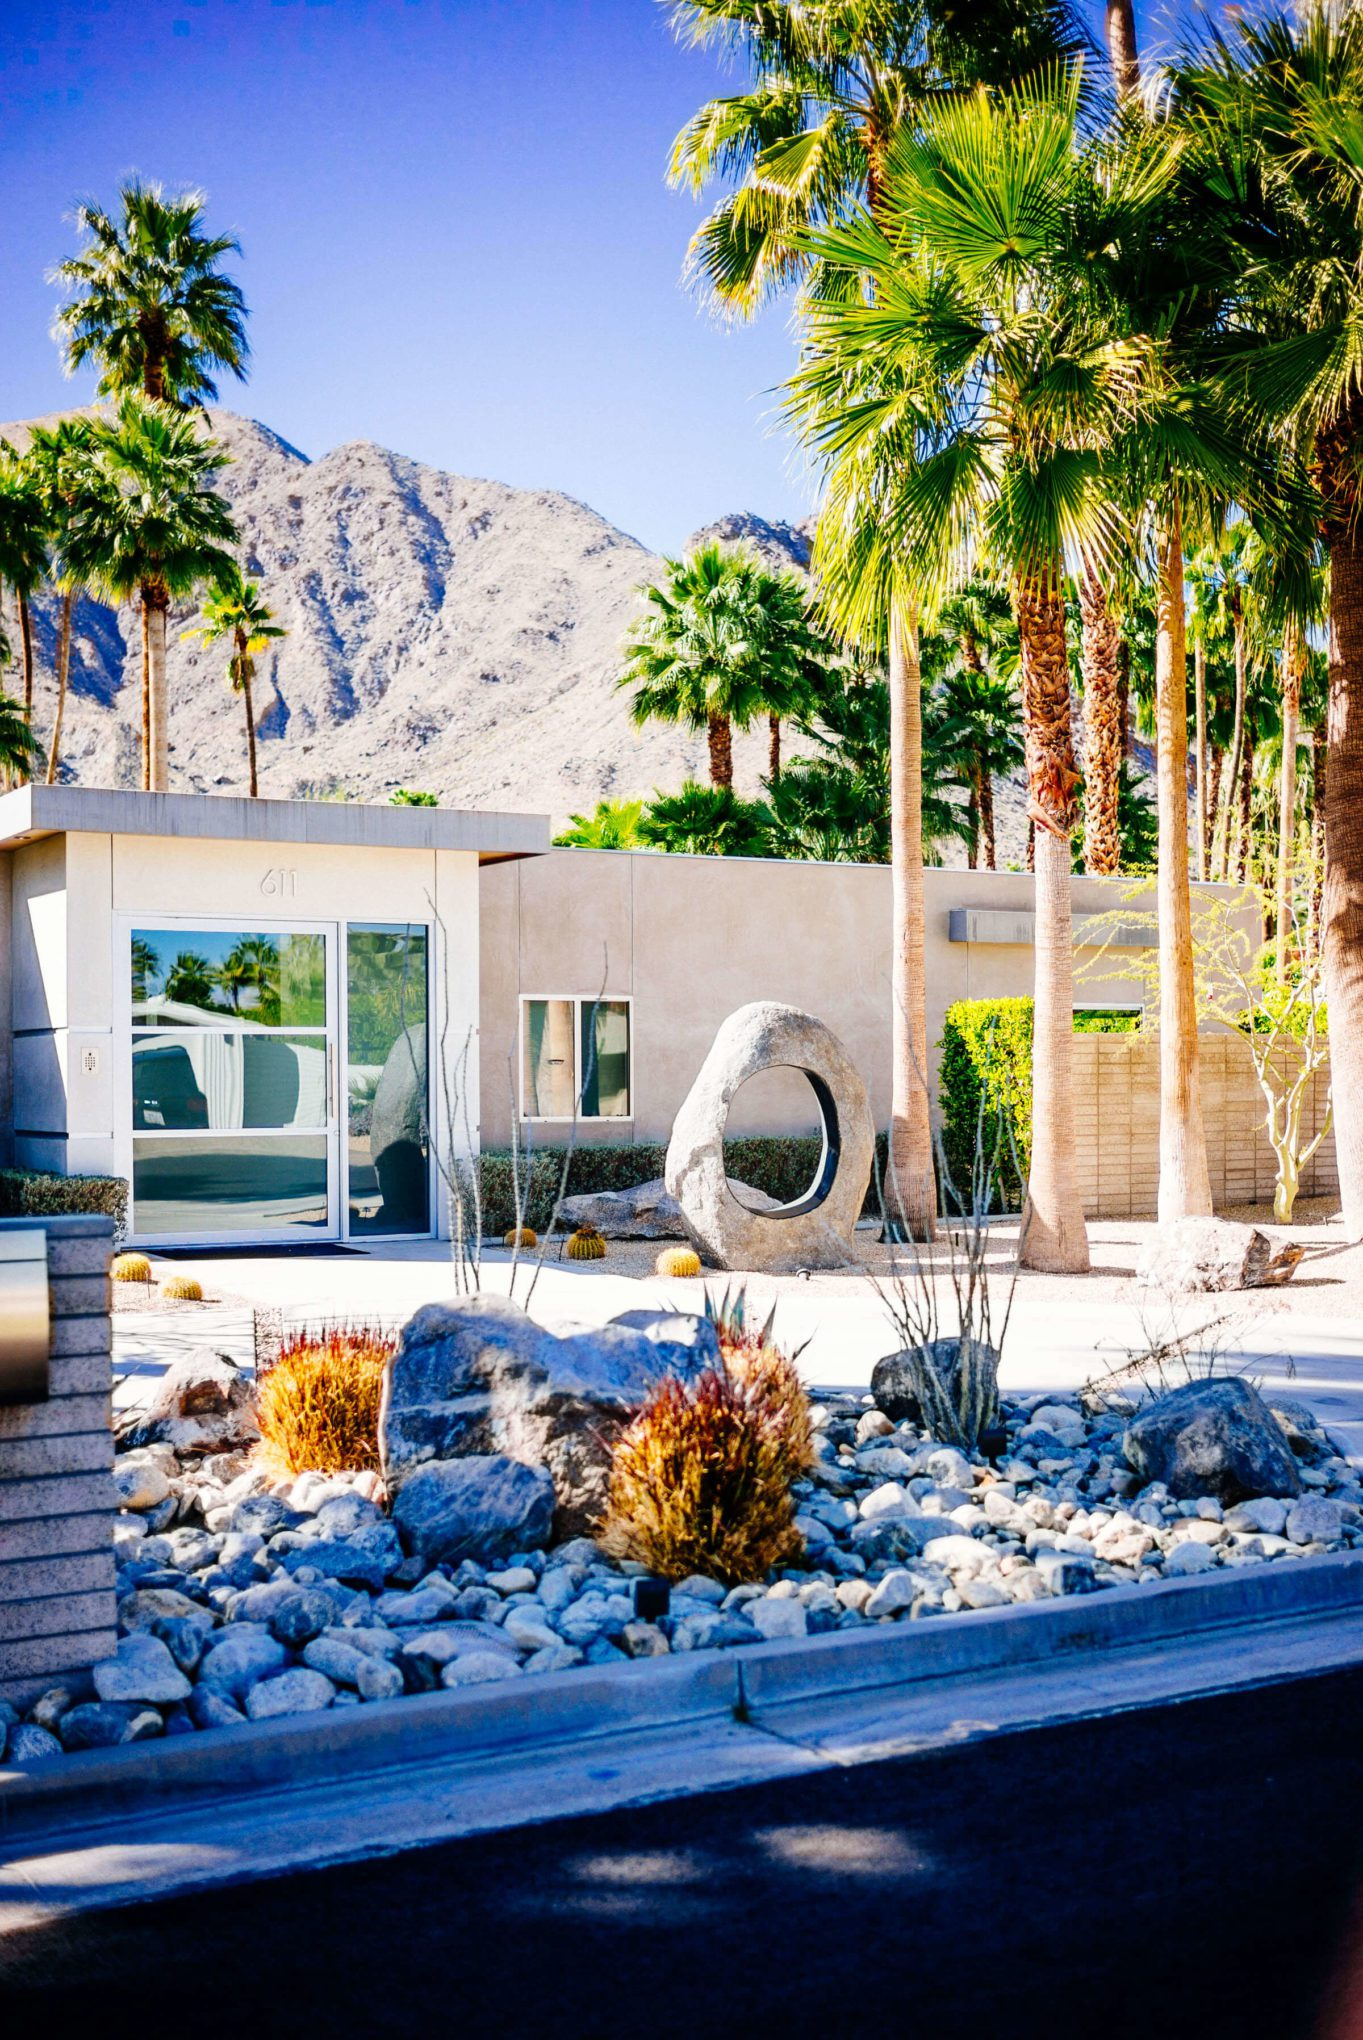 Catcus garden : Tour the beautiful Mid Century Homes in Palm Springs, The Taste SF